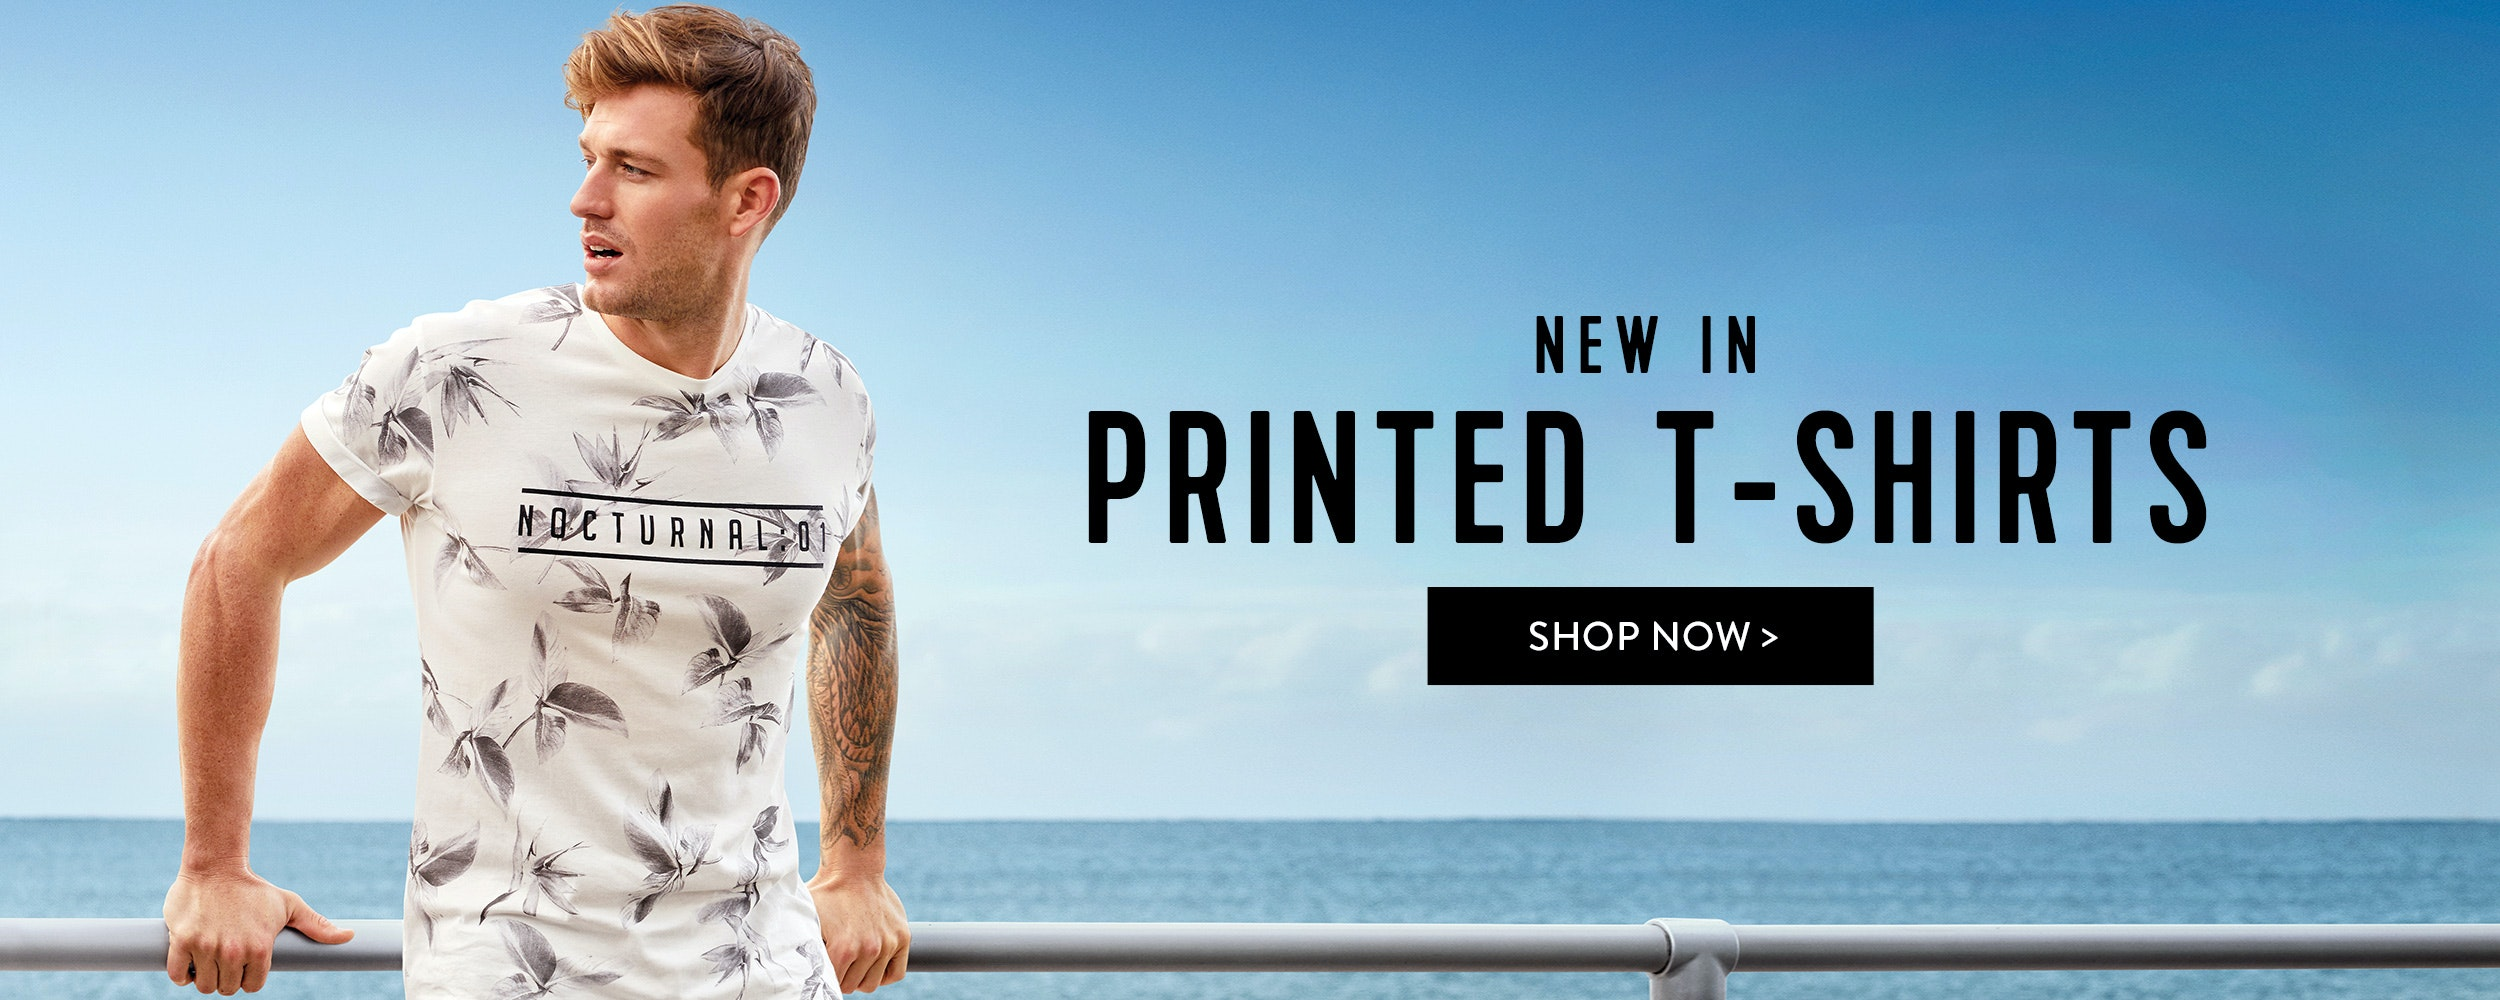 Printed T-shirts: Score 2 for $50